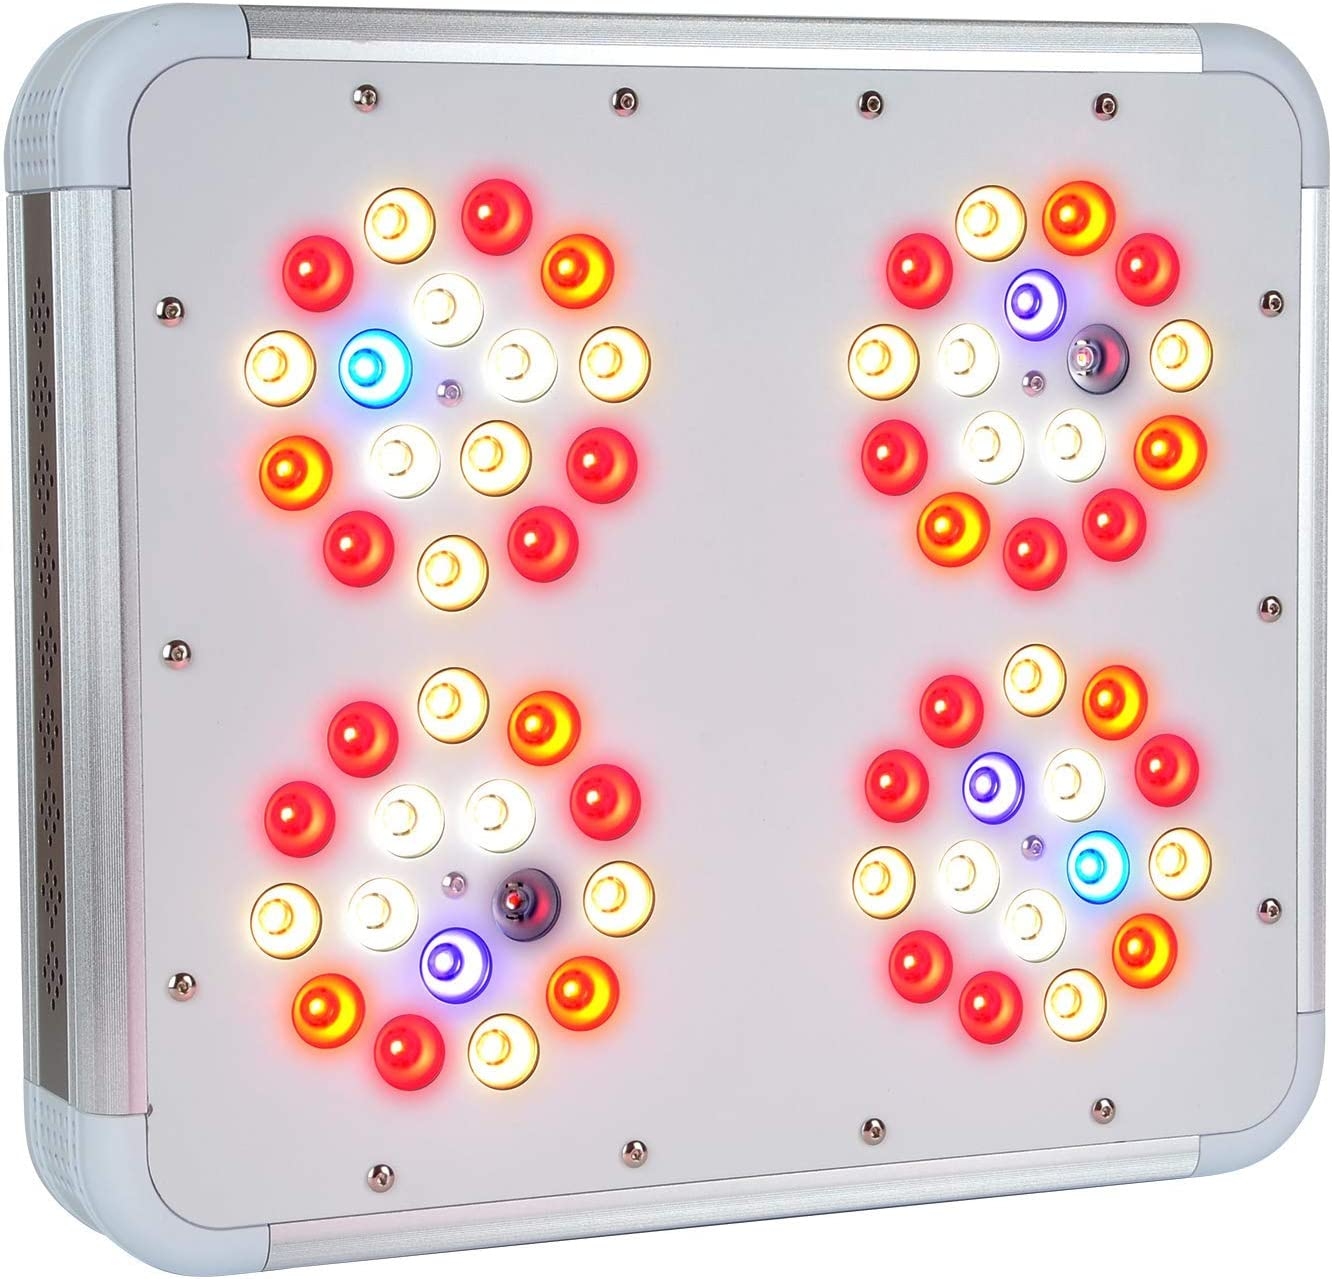 1000W LED Grow Light Veg Bloom – Full Spectrum Quiet, Cool Lamp for Indoor Growing – Perfect for M Tent and 2-4 Large Plants – 112W Power Draw, 630 PPFD at 18 – 3-Year 100 Diode War, Lifetime Supp